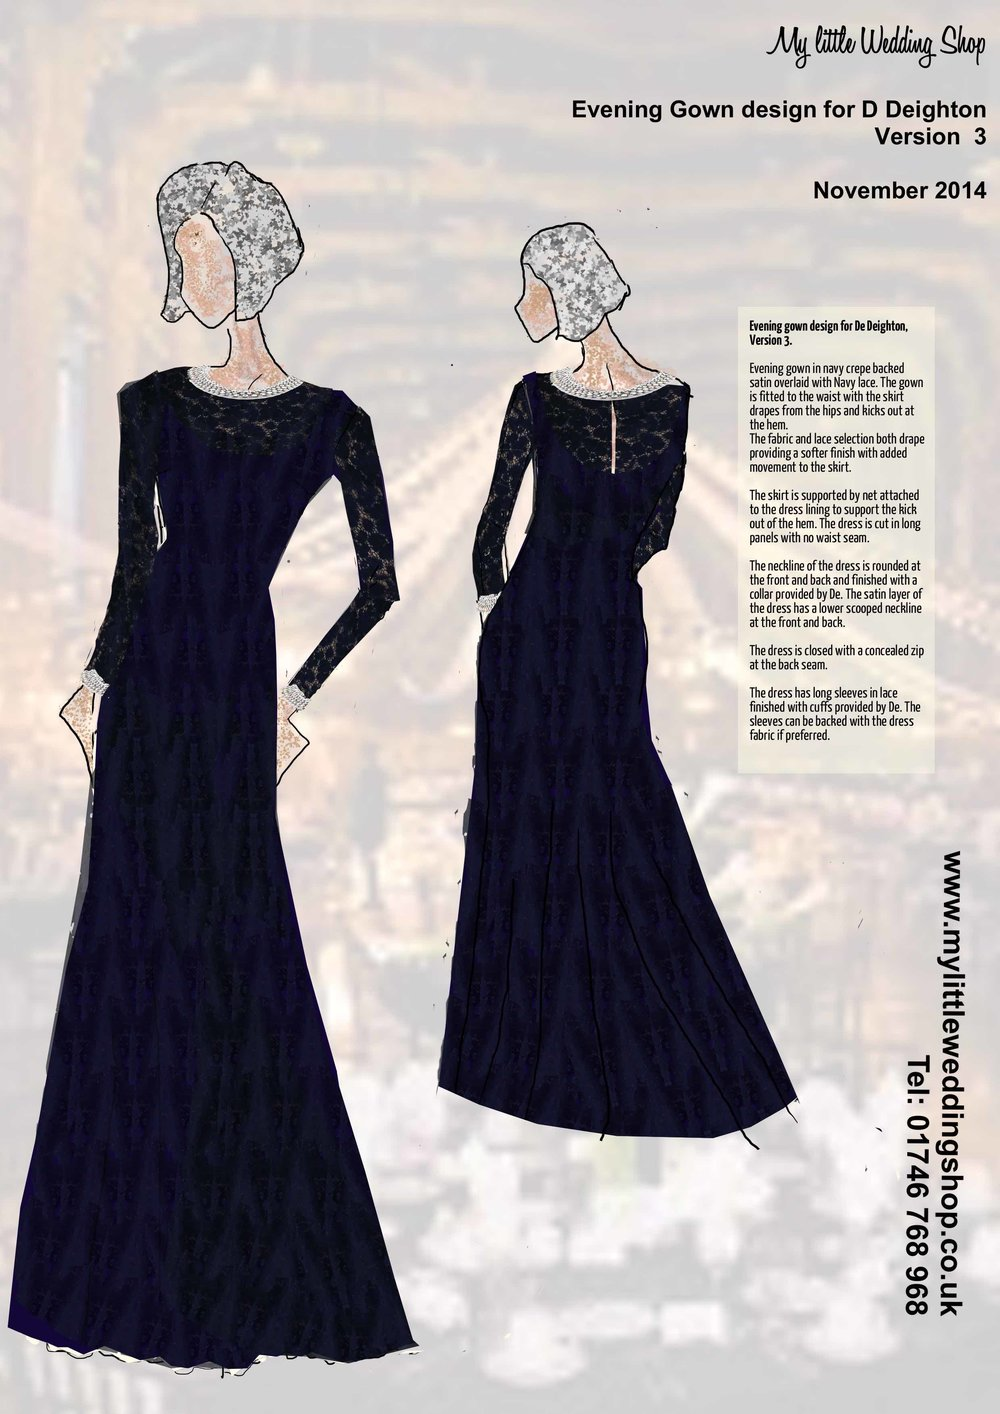 DD Gown Design V3 small.jpg